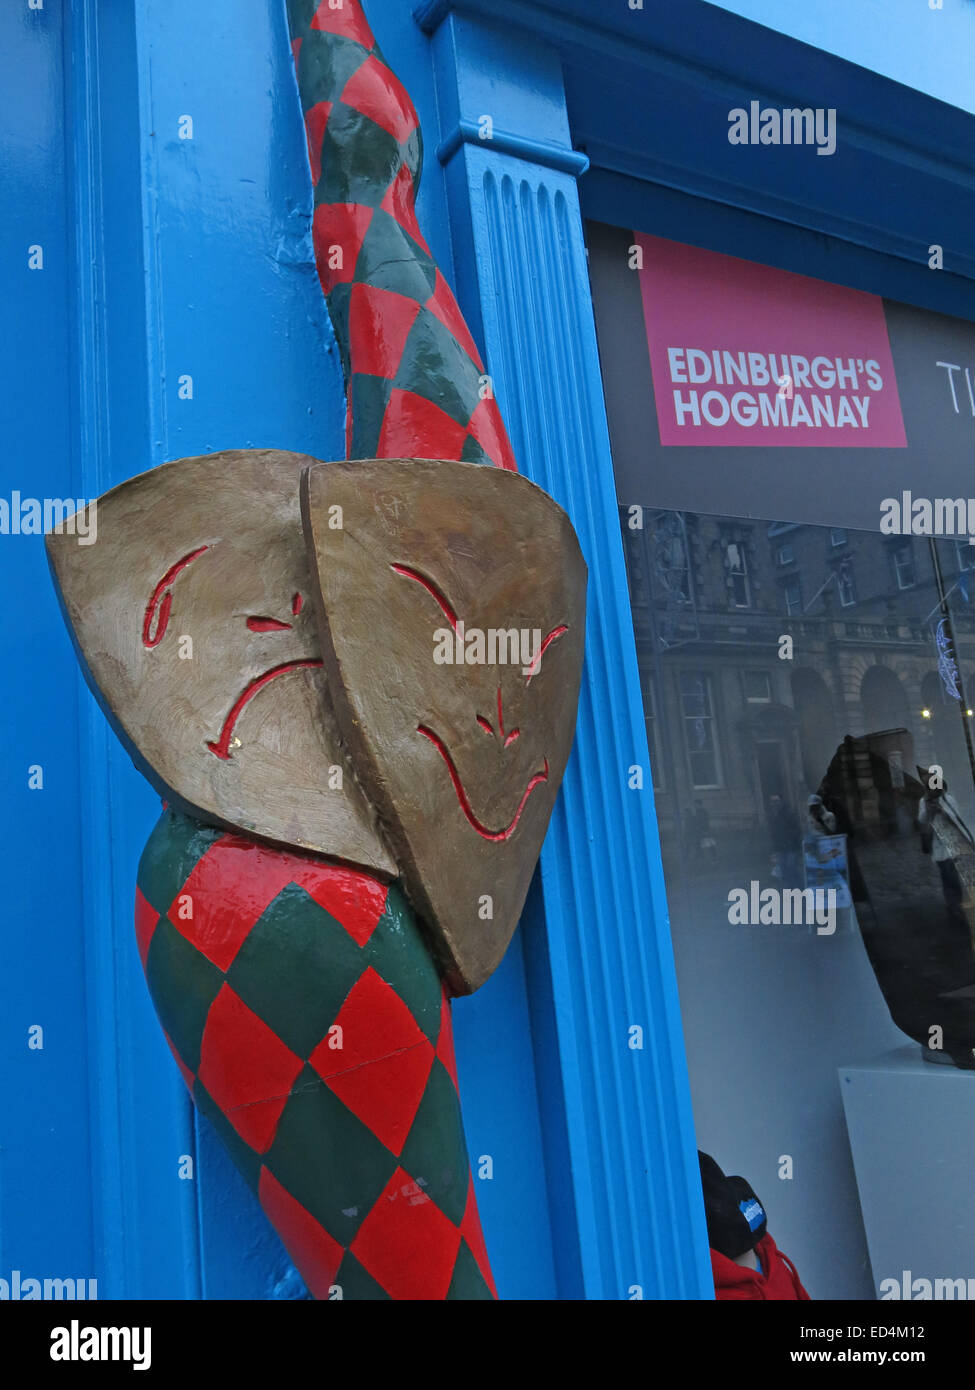 EdFringe office for Hogmanay and Fringe Events, Royal Mile, Edinburgh, Scotland, UK - Stock Image